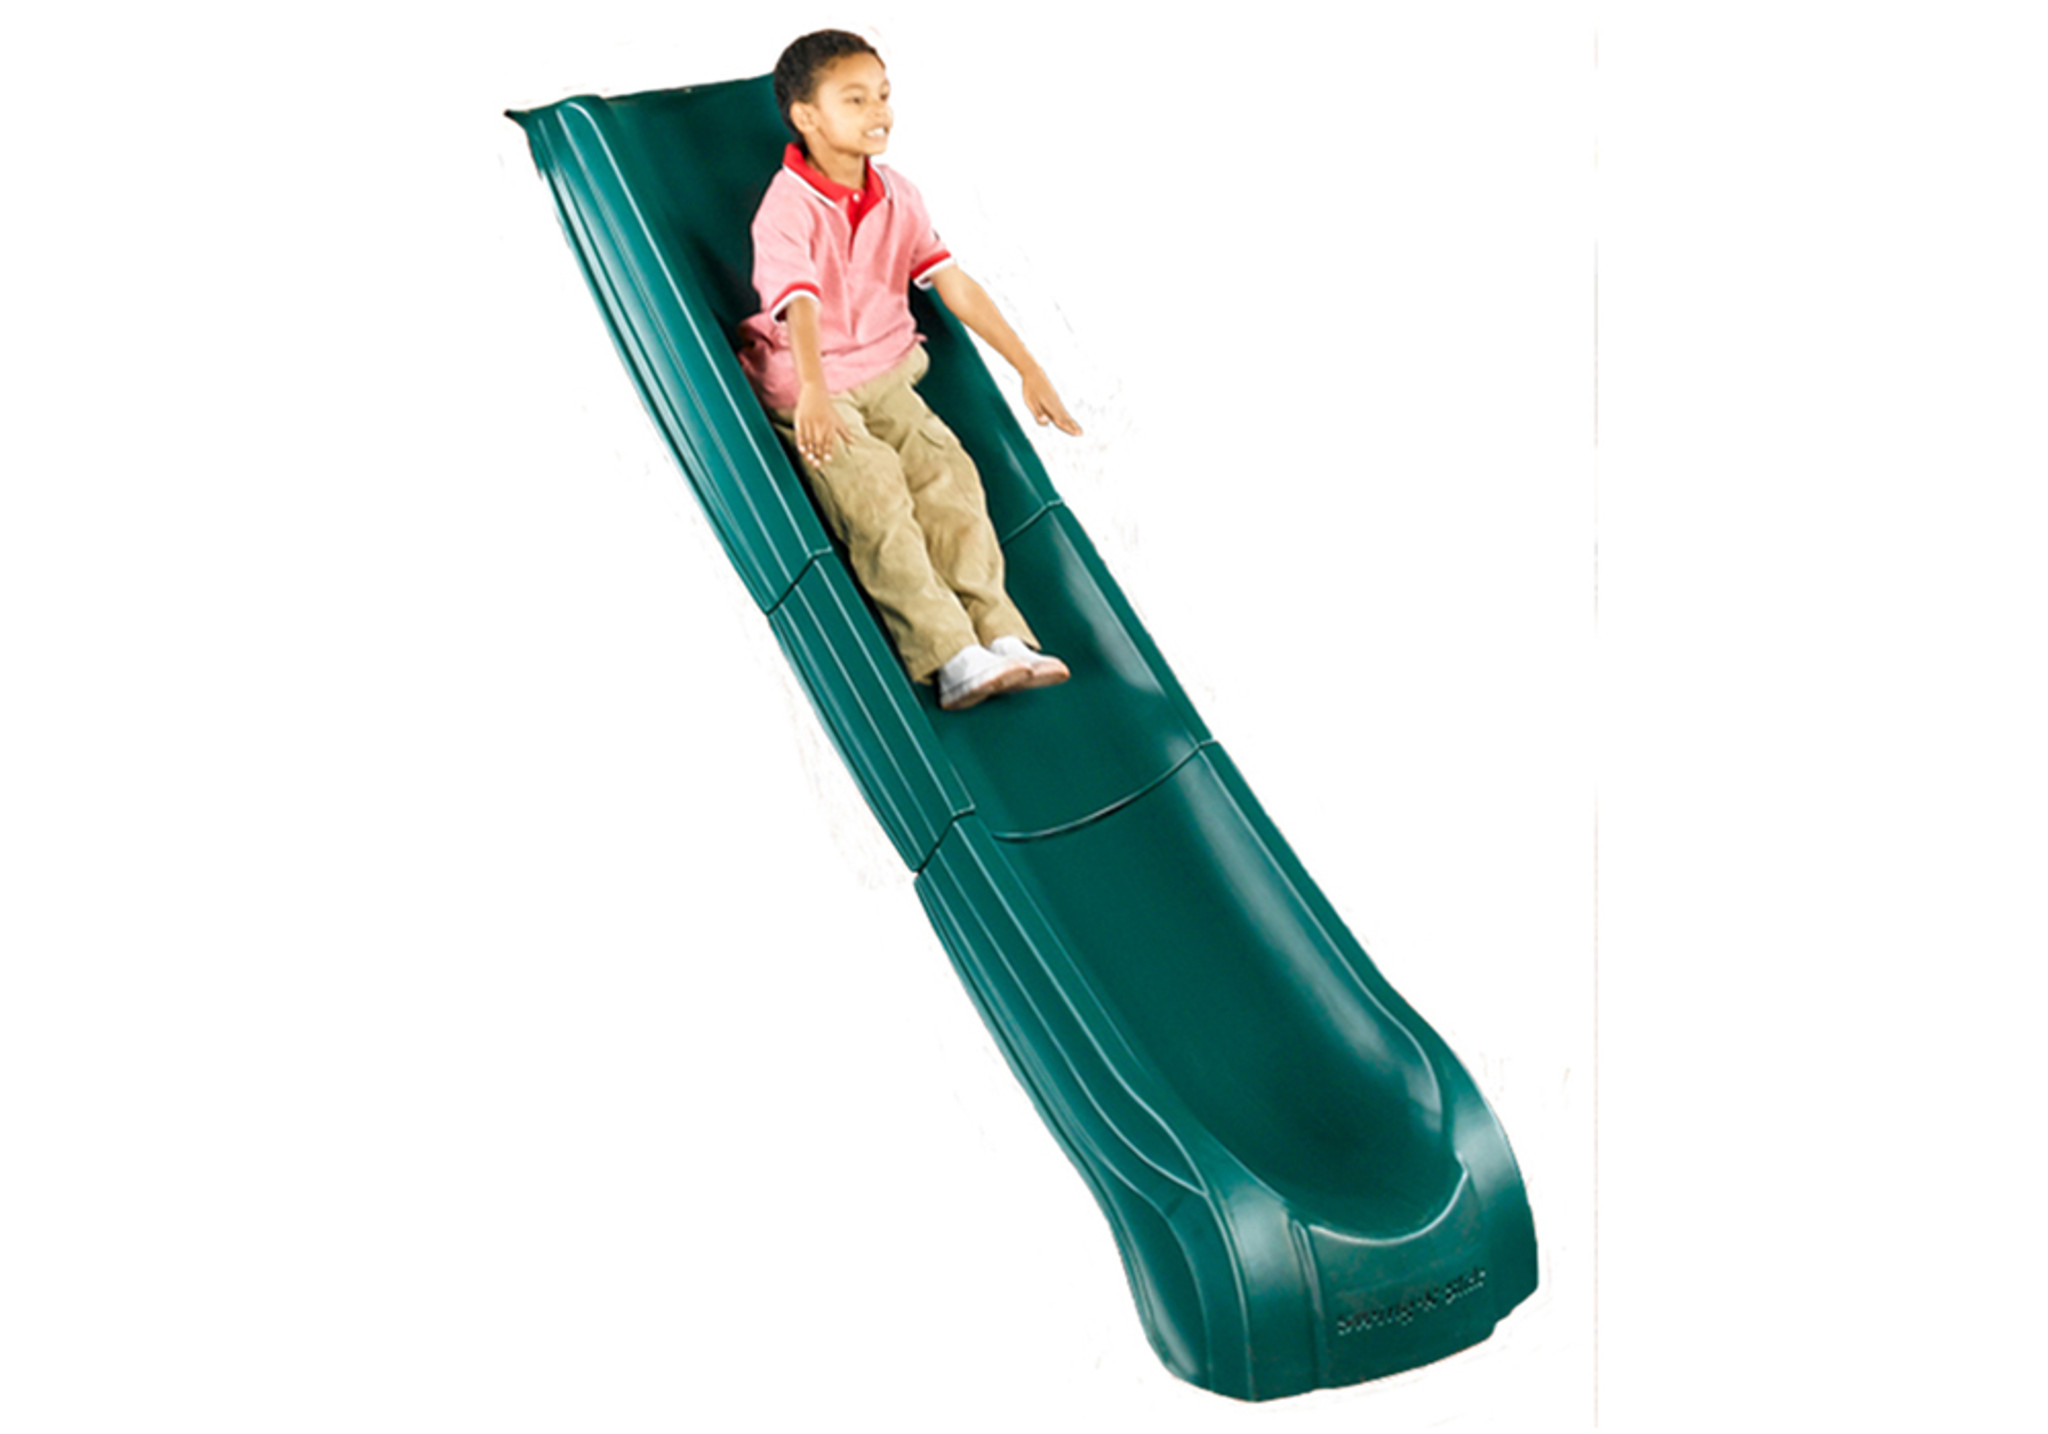 Studio shot of Green Super Summit Slide from PlayNation Play Systems